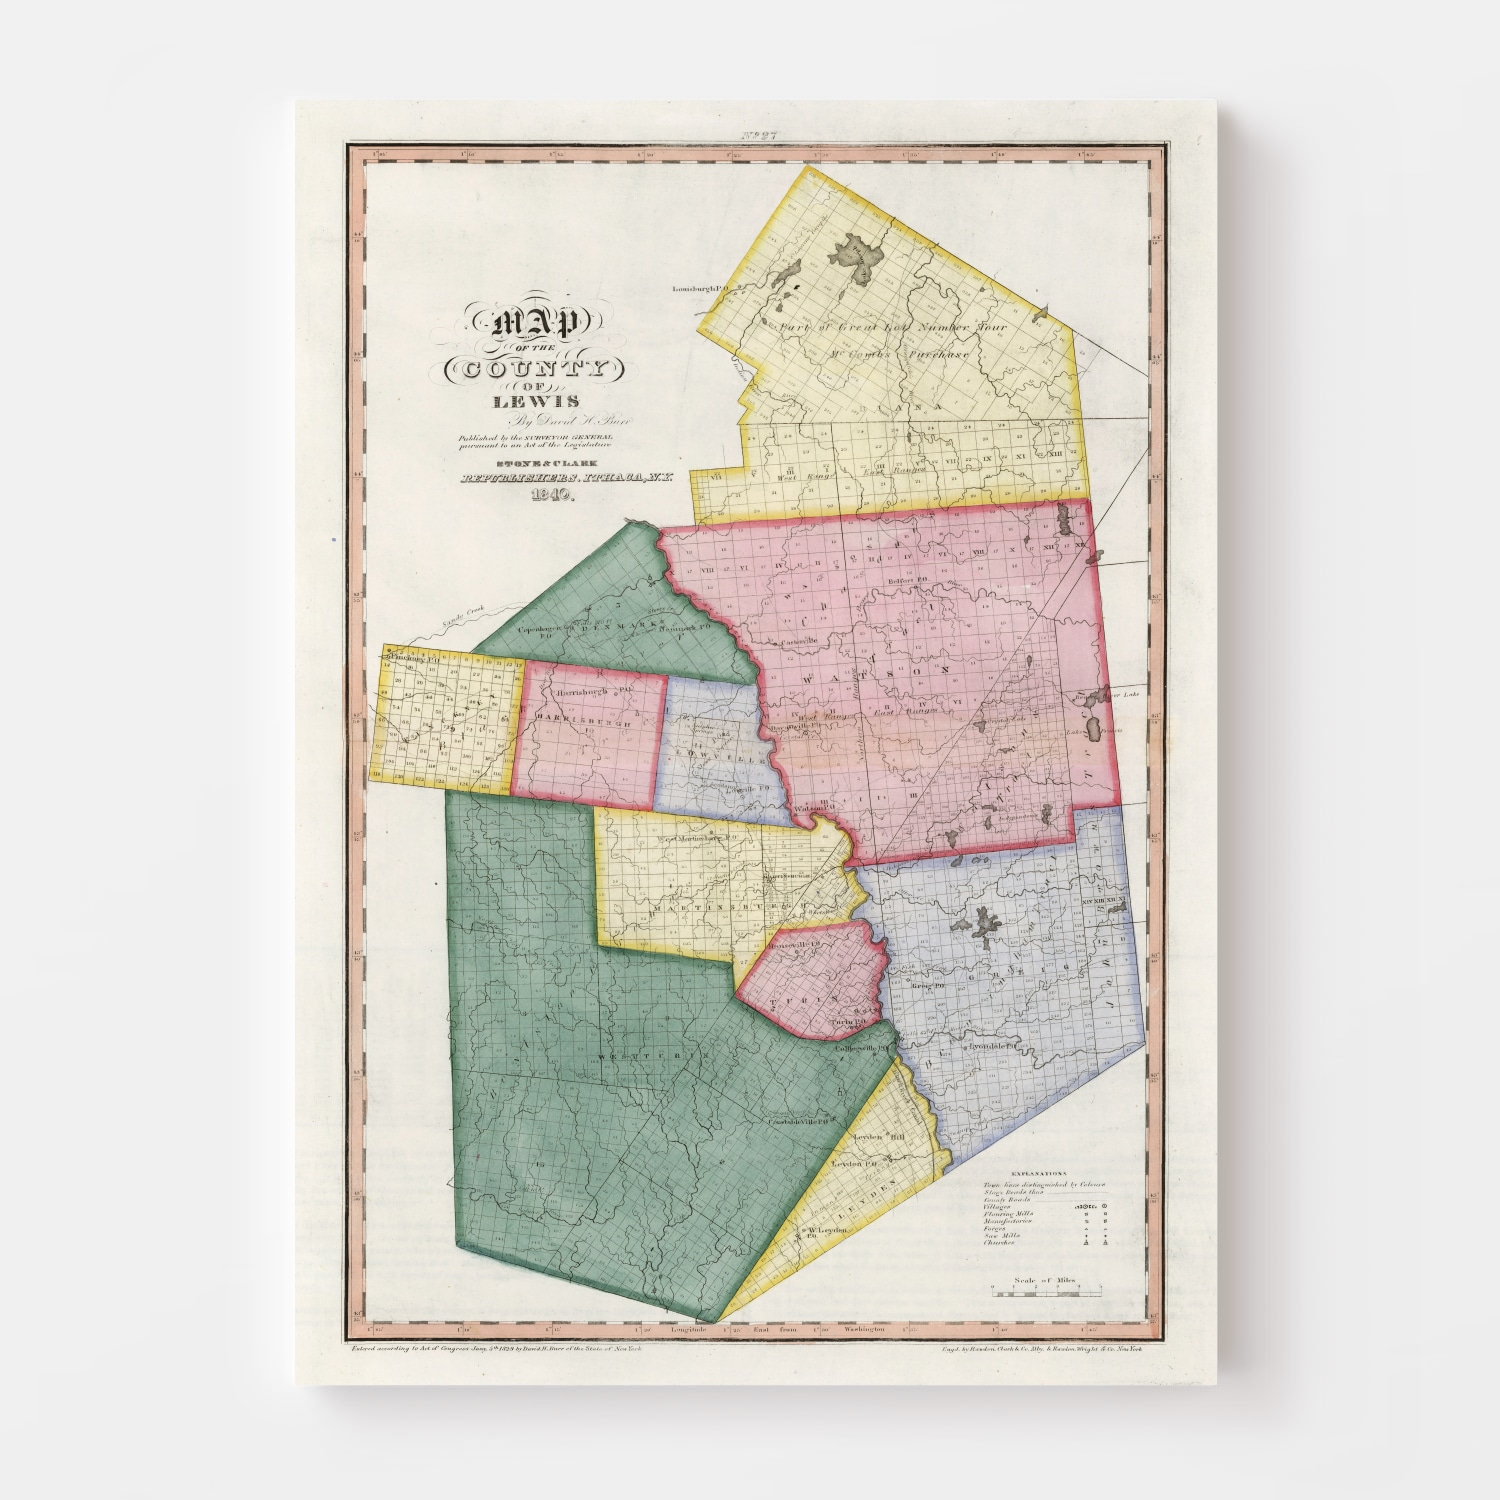 Vintage Map of Lewis County New York, 1840